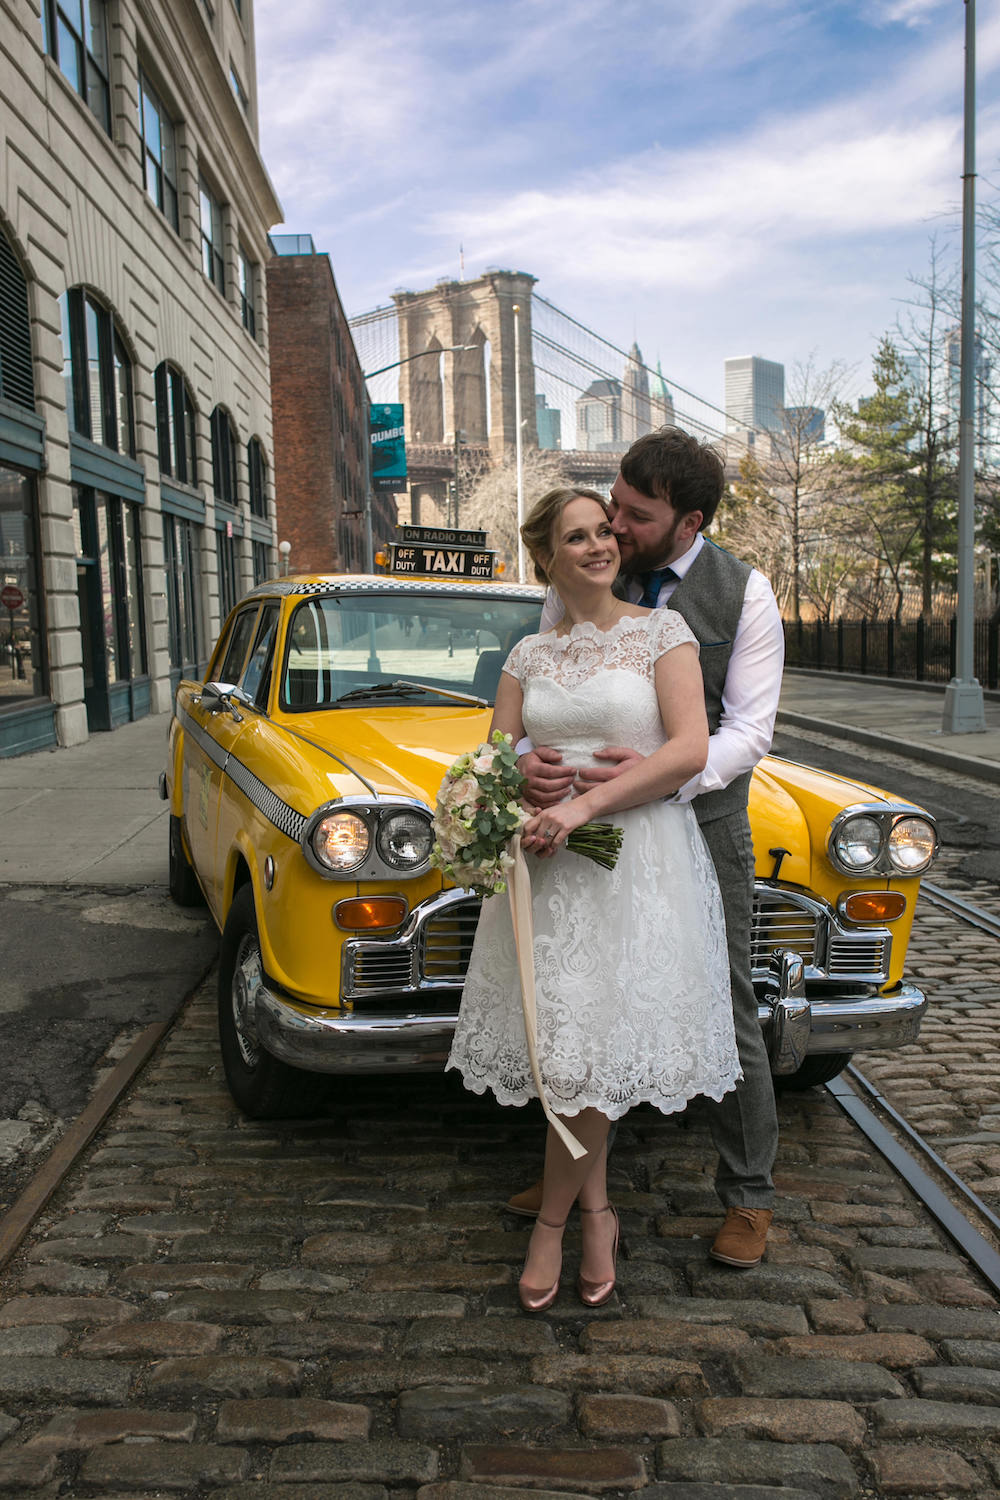 Vintage Cab for Elopement New York City